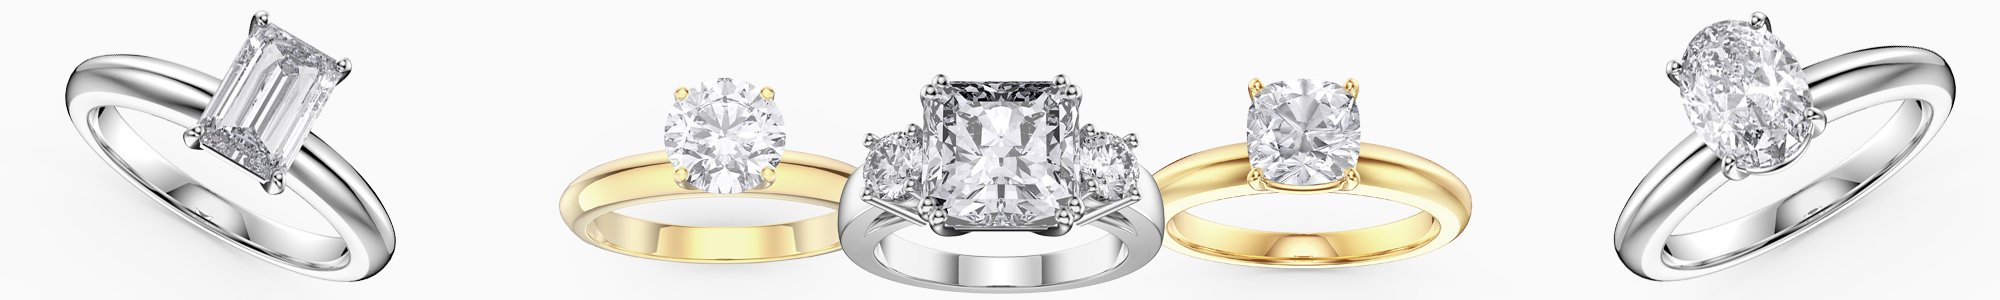 Shop Diamond Solitaire Rings by Jian London. Buy direct and save from our wide selection of Solitaire Rings at the Jian London jewelry Store. Free US Delivery